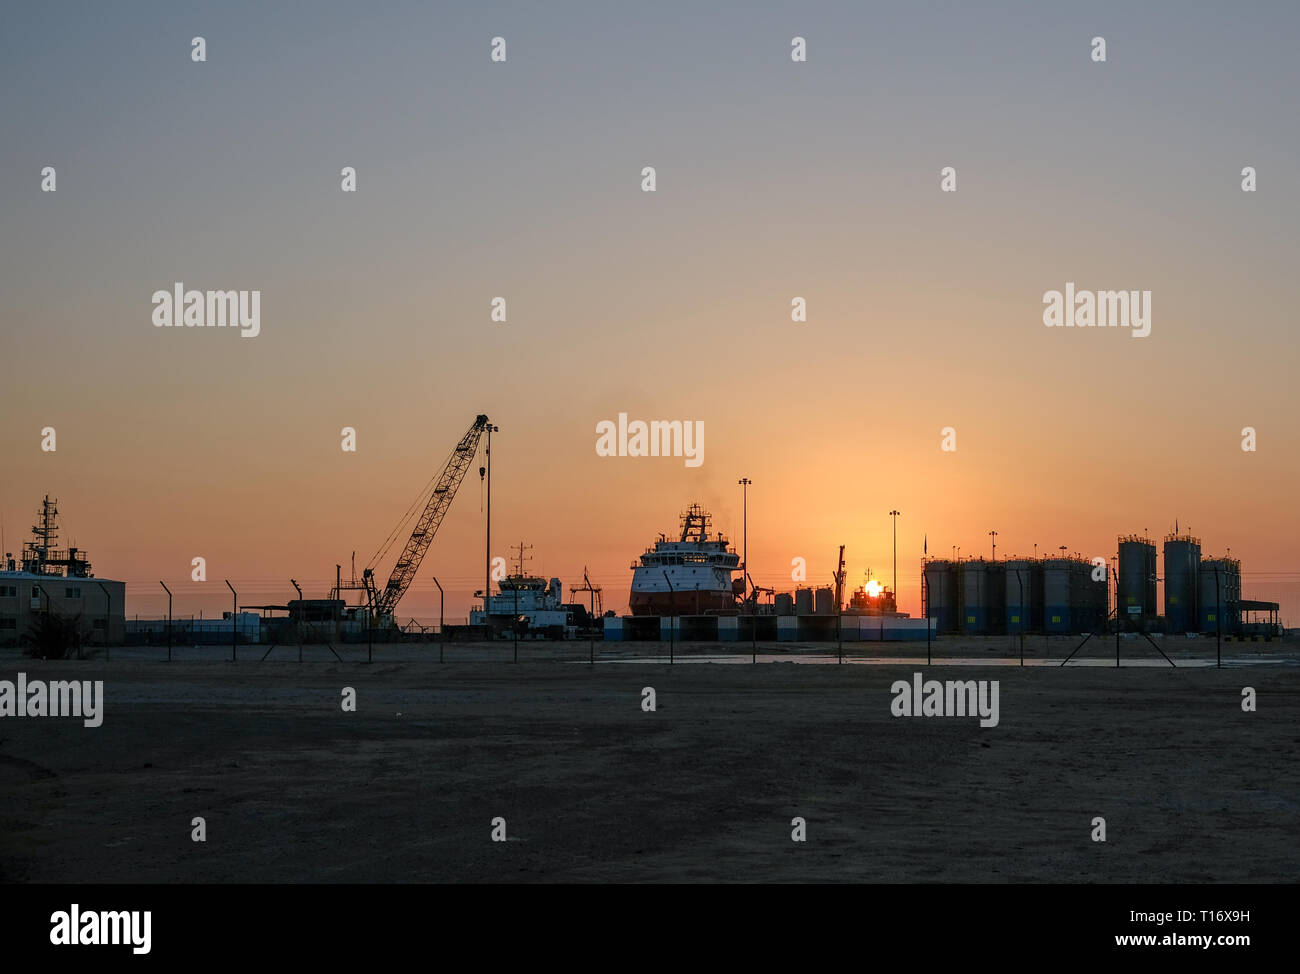 Drilling Ships Stock Photos & Drilling Ships Stock Images